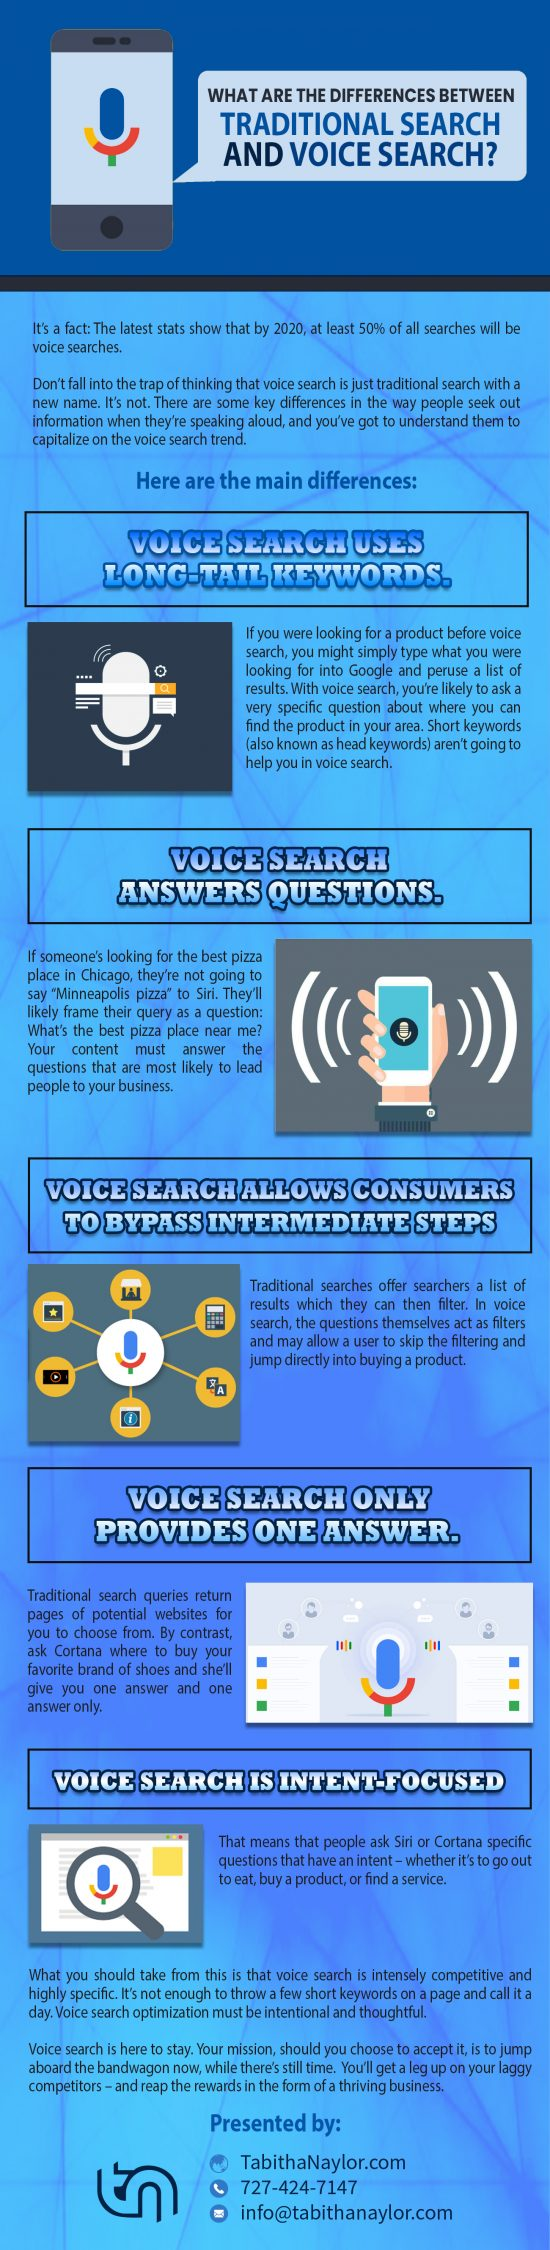 What-Are-the-Differences-Between-Traditional-Search-and-Voice-Search-550x2250